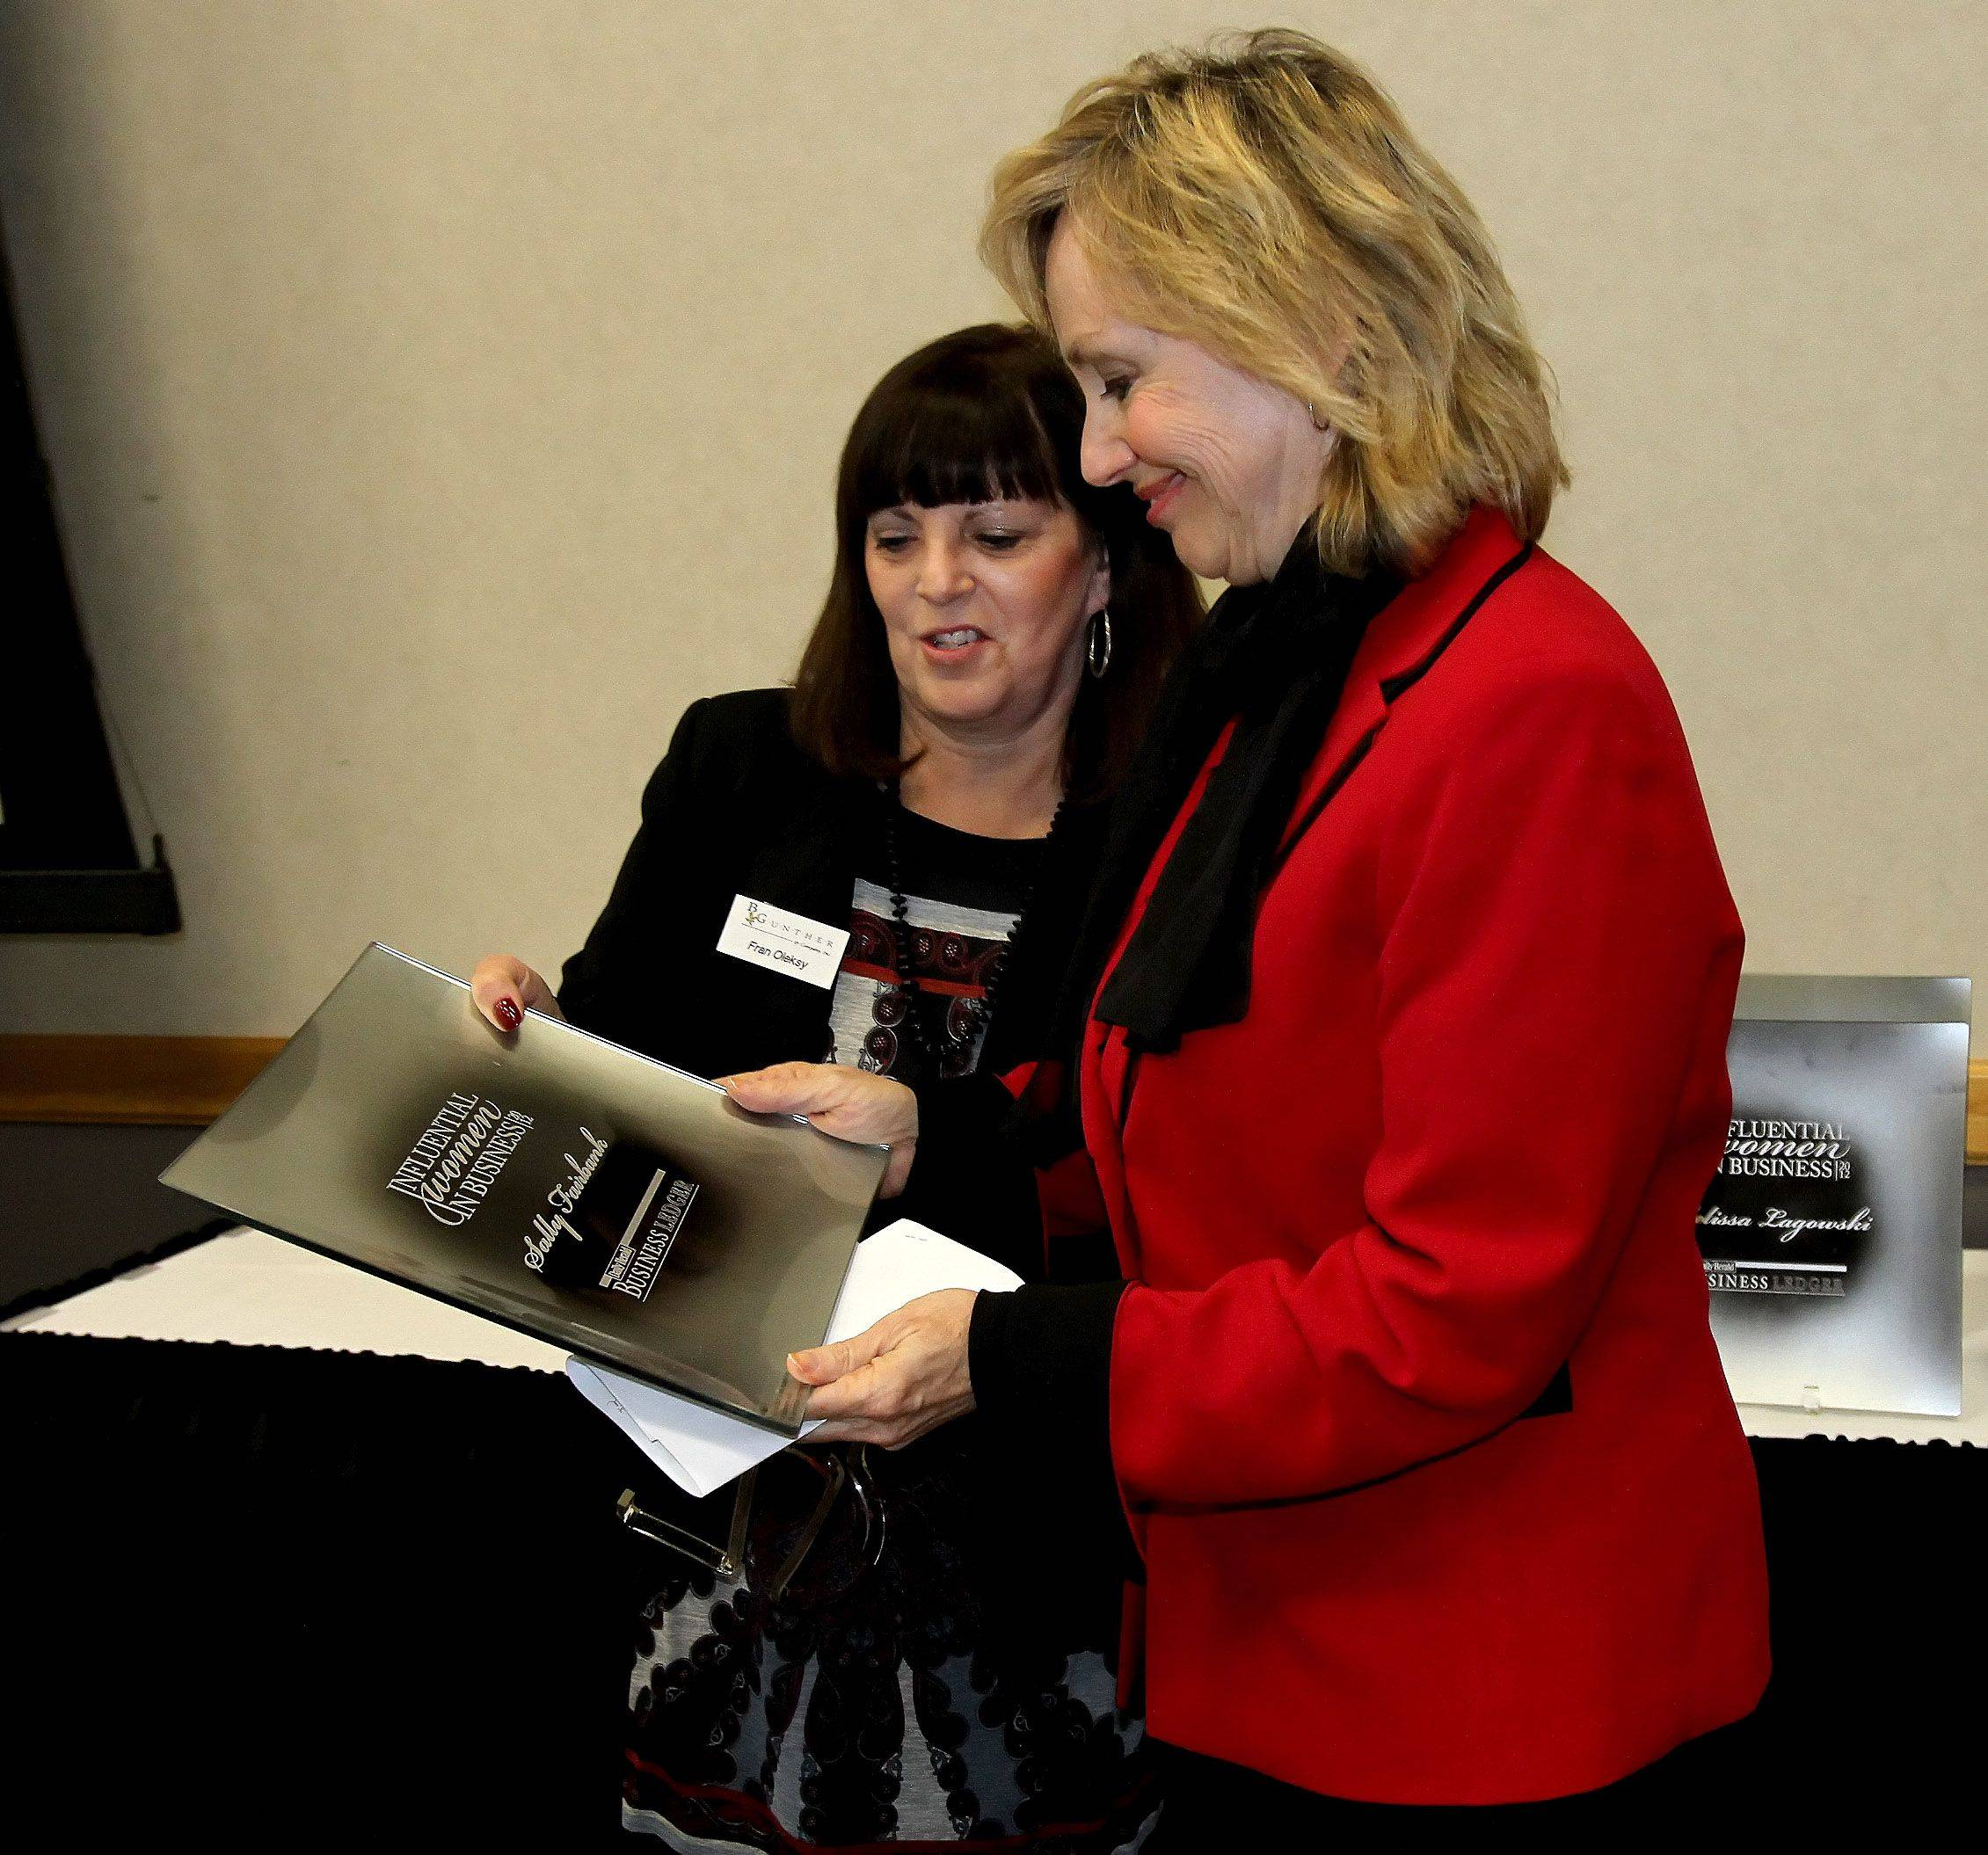 Fran Oleksy, with B. Gunther & Company, left, presents Sally Fairbank, director of Paralegal Studies Program at the College of DuPage, with the Influential Women in Business award at Northern Illinois University Naperville campus Monday.